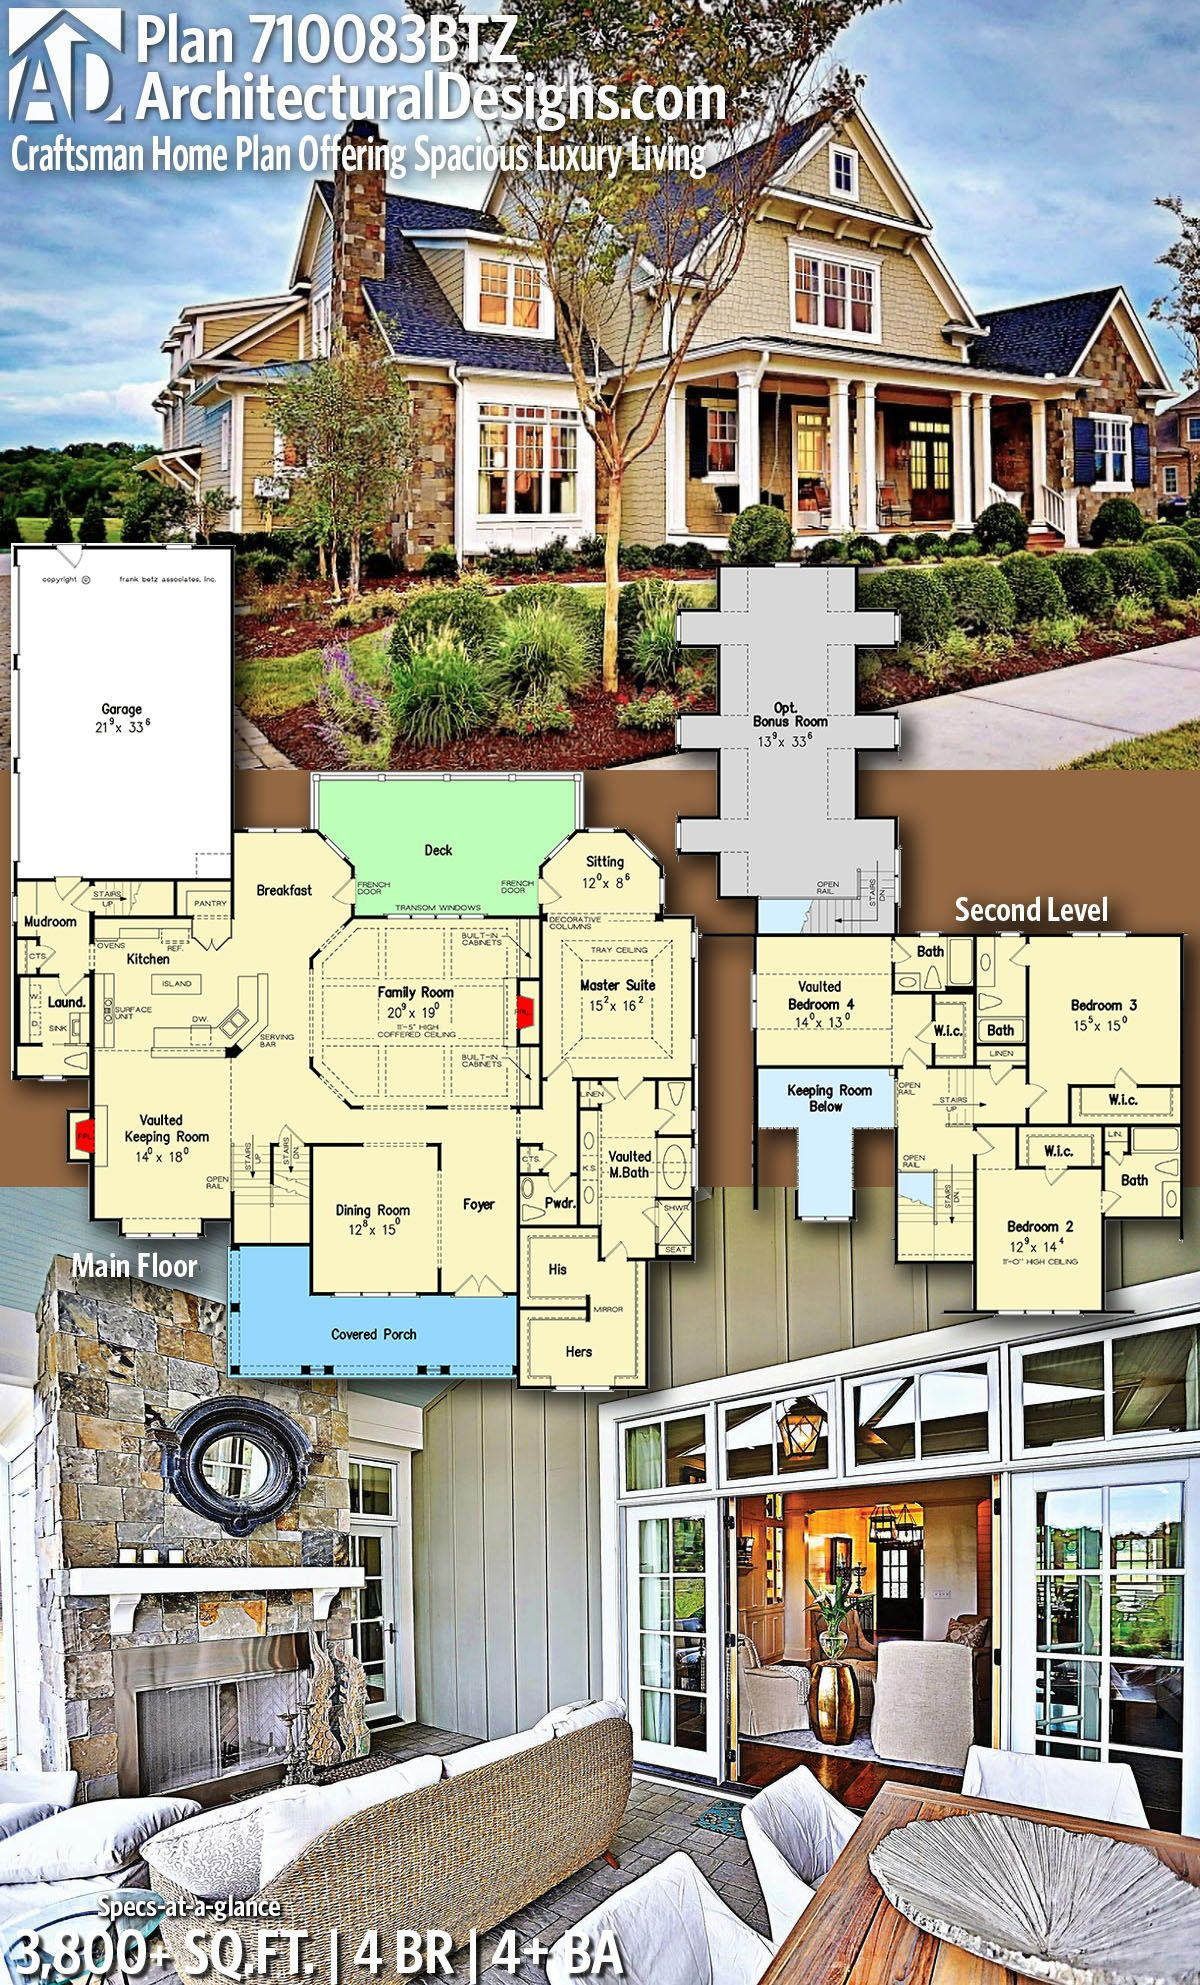 Architectural designs home plan btz gives you bedrooms baths and sq also craftsman offering spacious luxury living rh ar pinterest